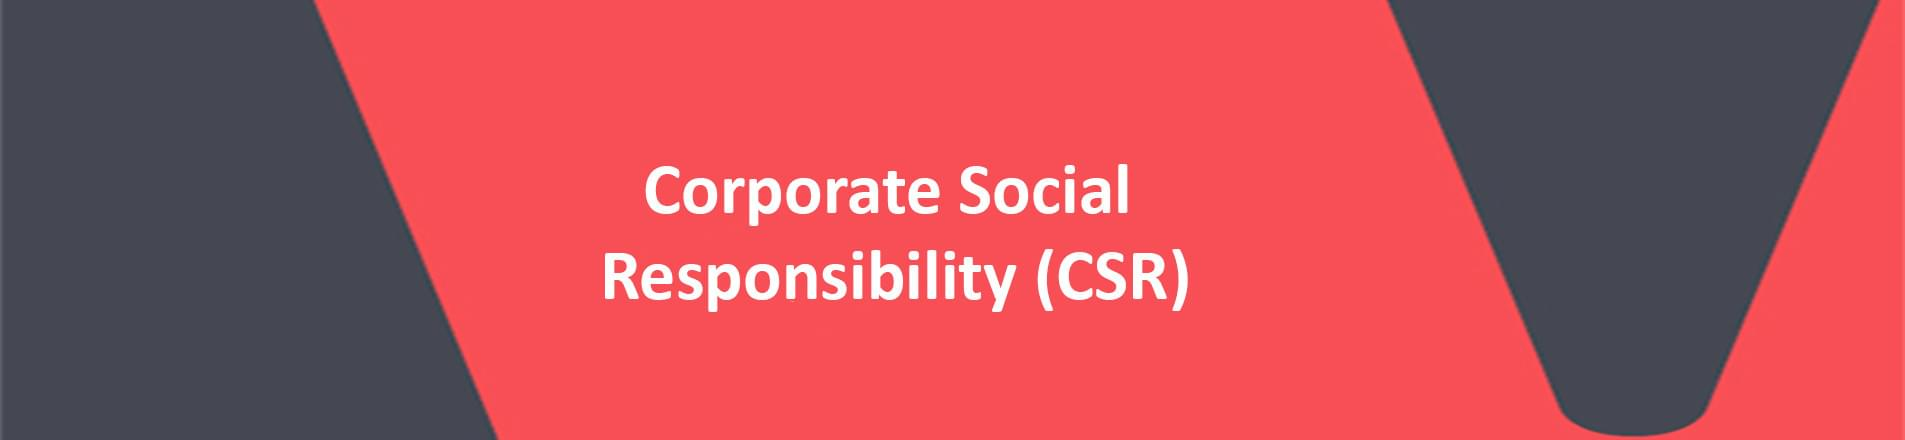 """Image VERCIDA banner.  Red background with """"Corporate Social Responsibility (CSR)"""" spelled in white letters."""